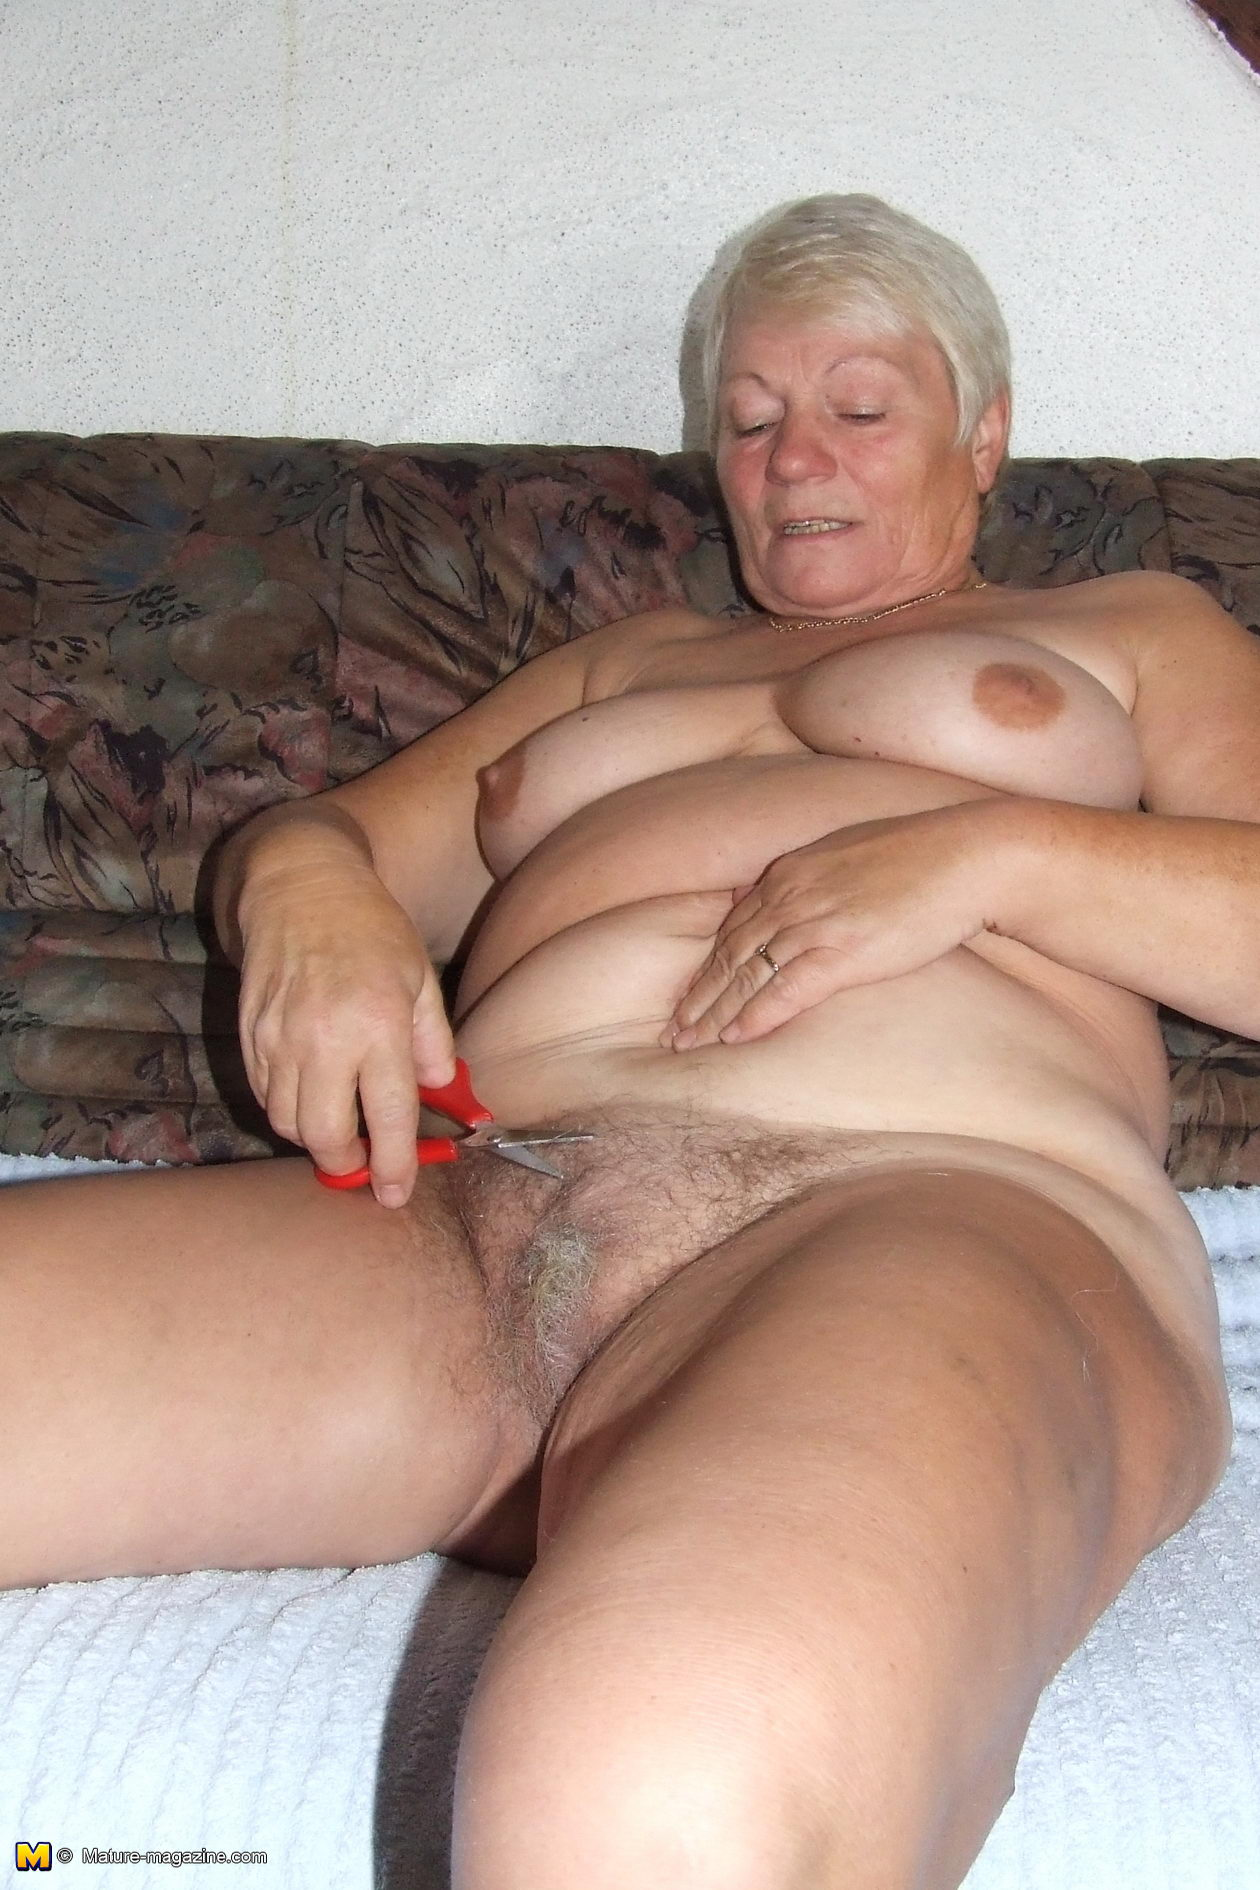 m naked old lady pics